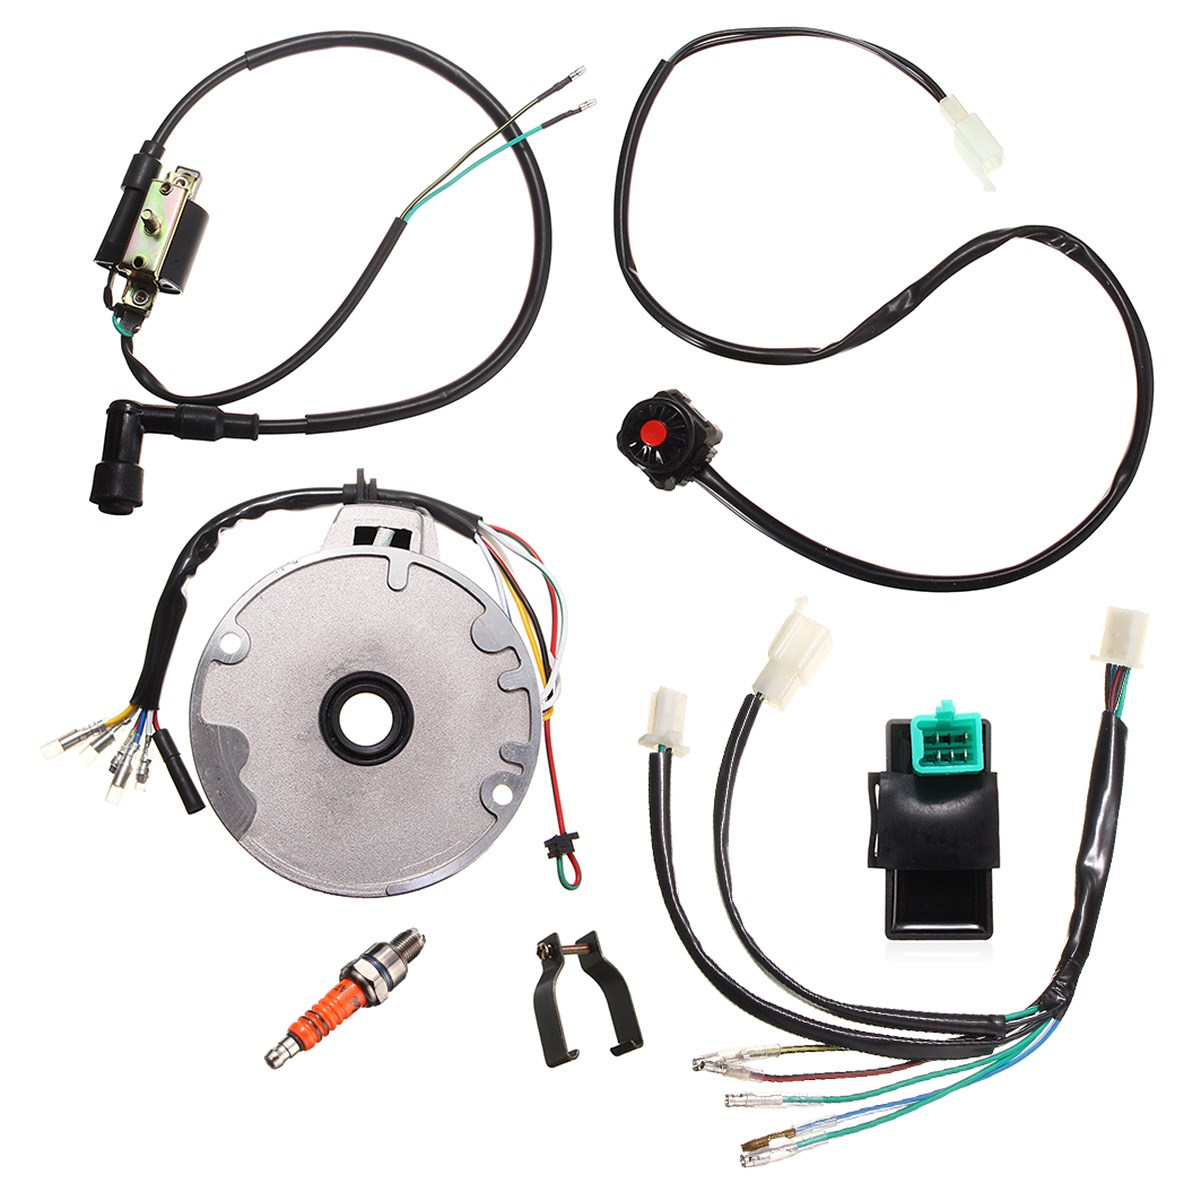 hight resolution of universal motorcycle dirt pit bike cdi for spark plug switch magneto wire harness kit 50